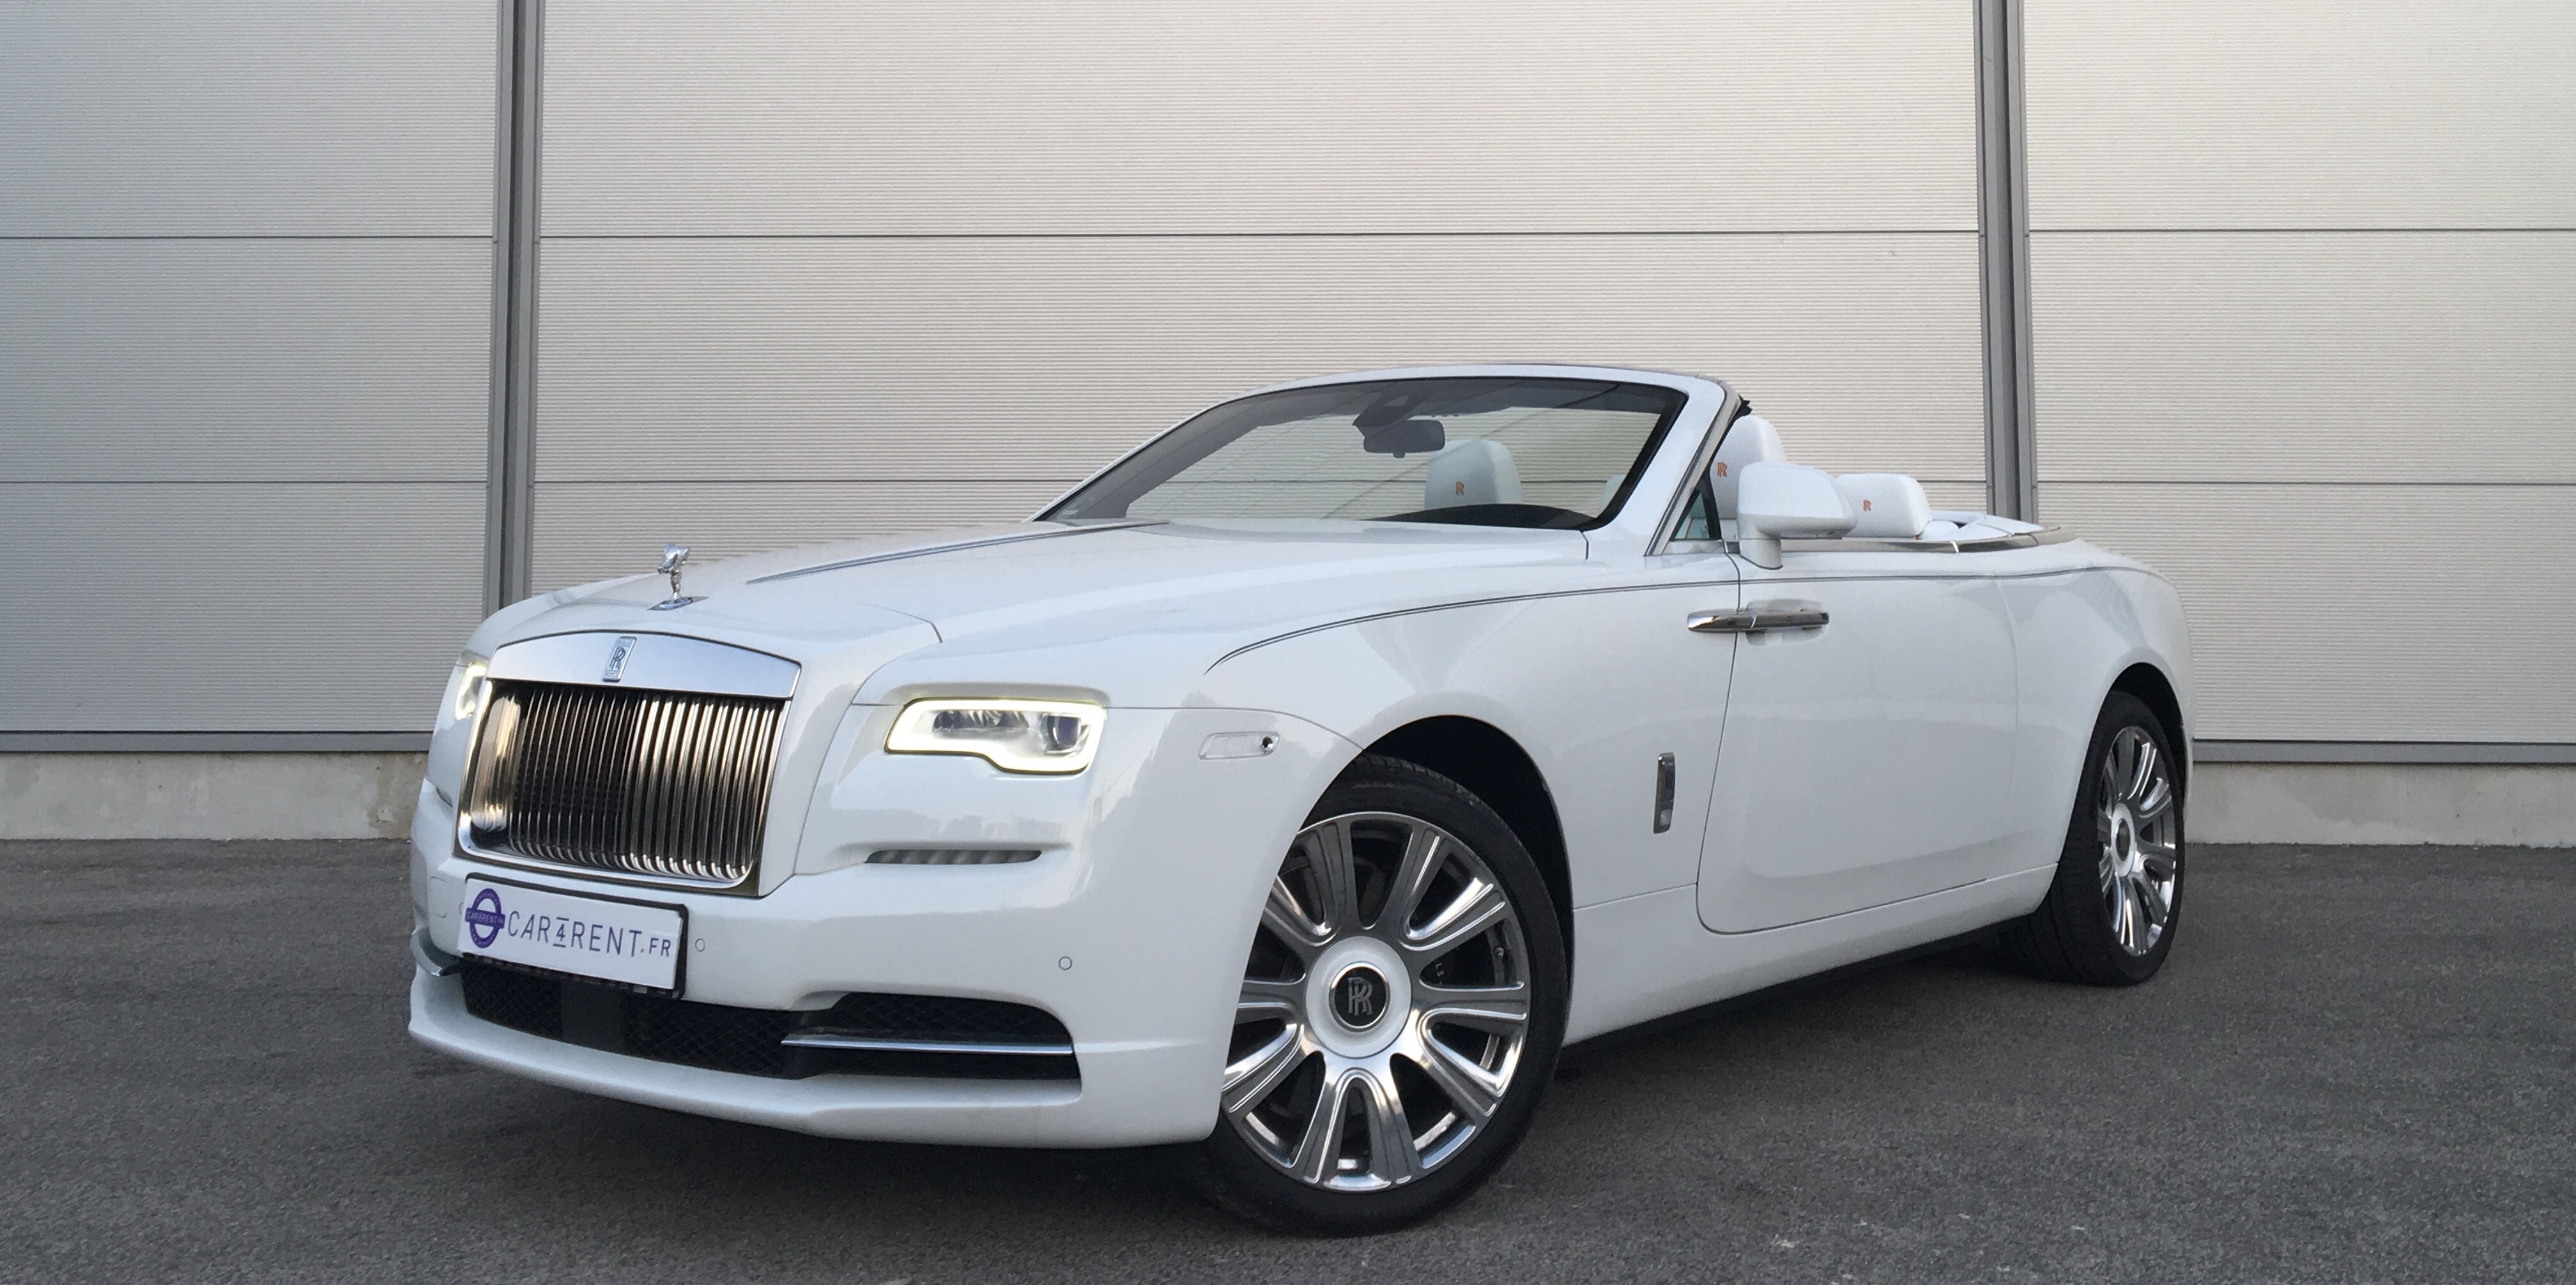 Rolls Royce For Hire >> Rolls Royce Dawn - Car4Rent